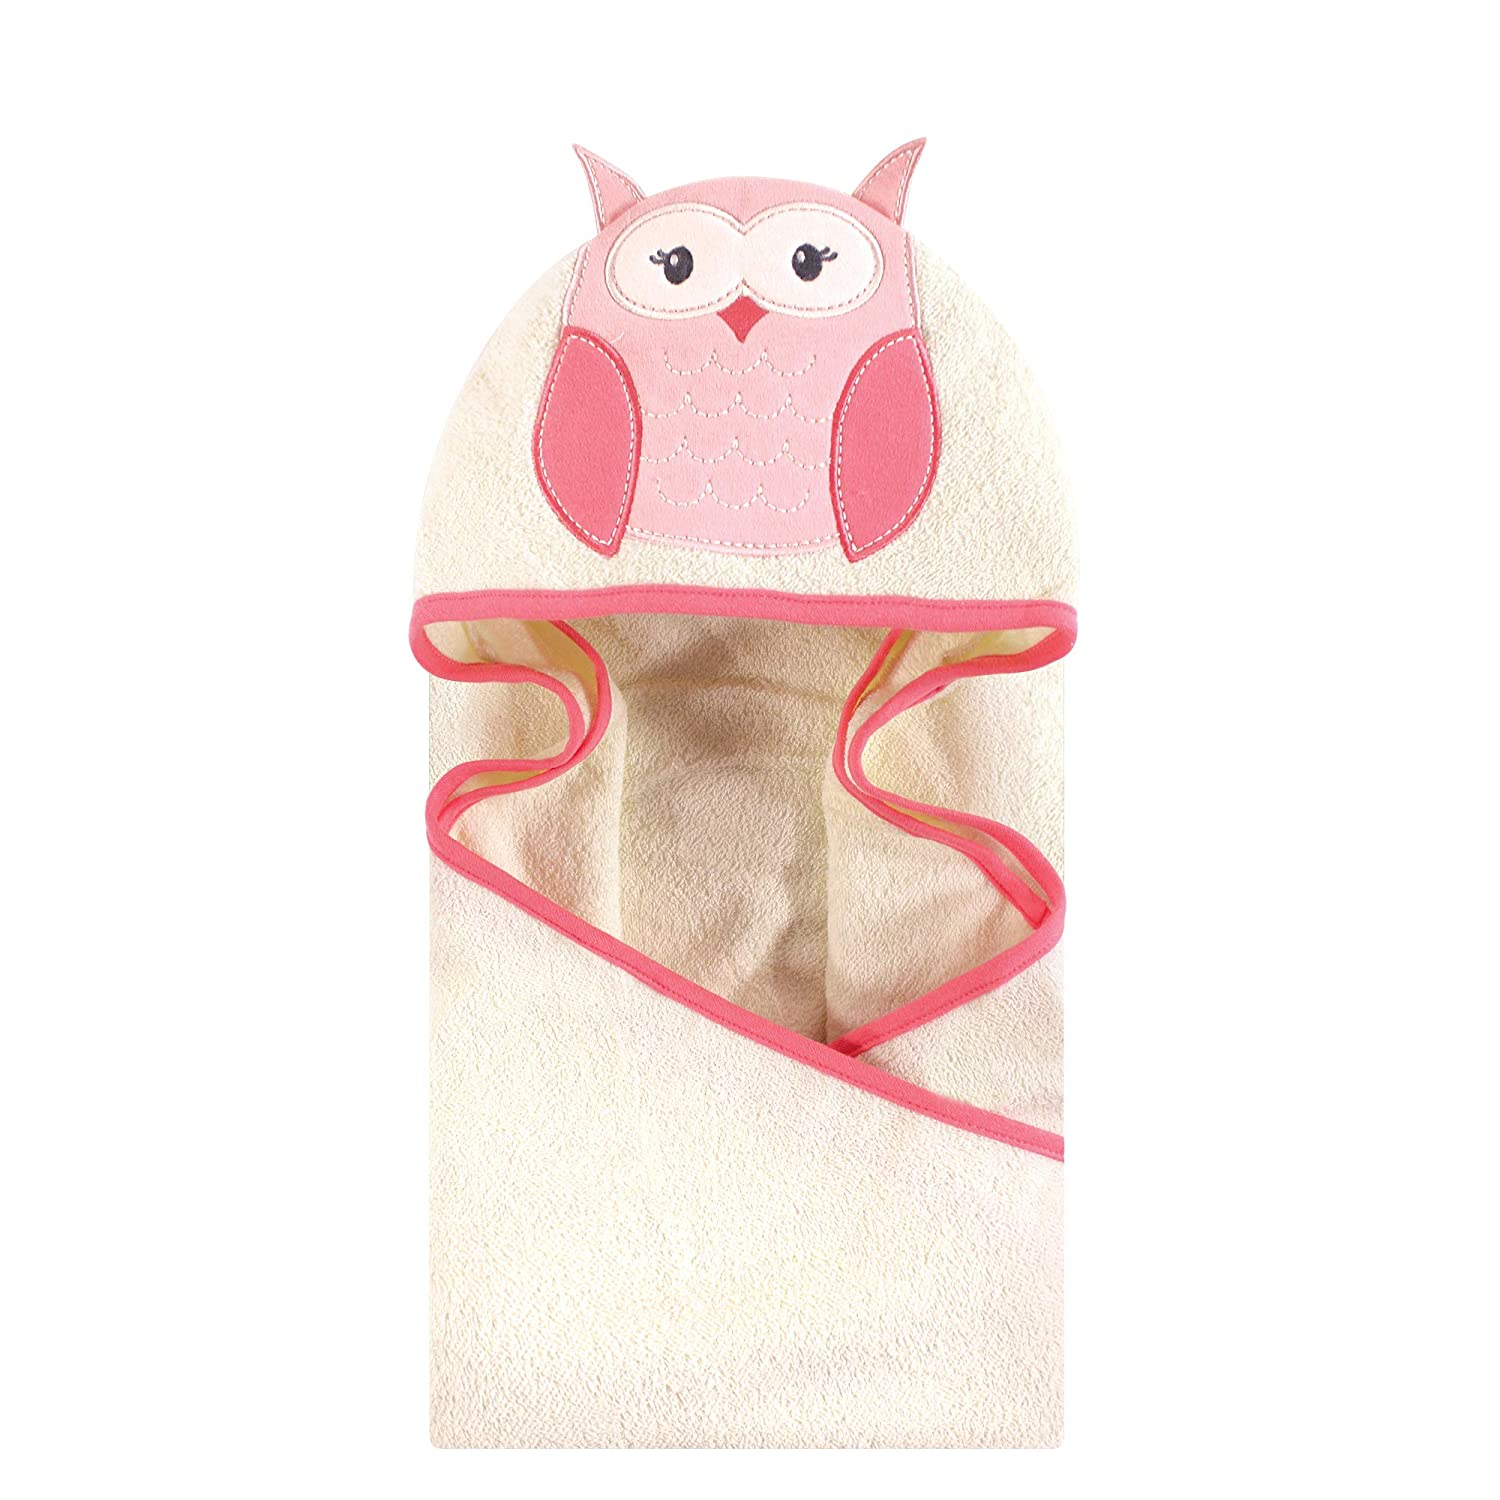 Hudson Baby Animal Face Hooded Towel for Baby Girls Pink Owl